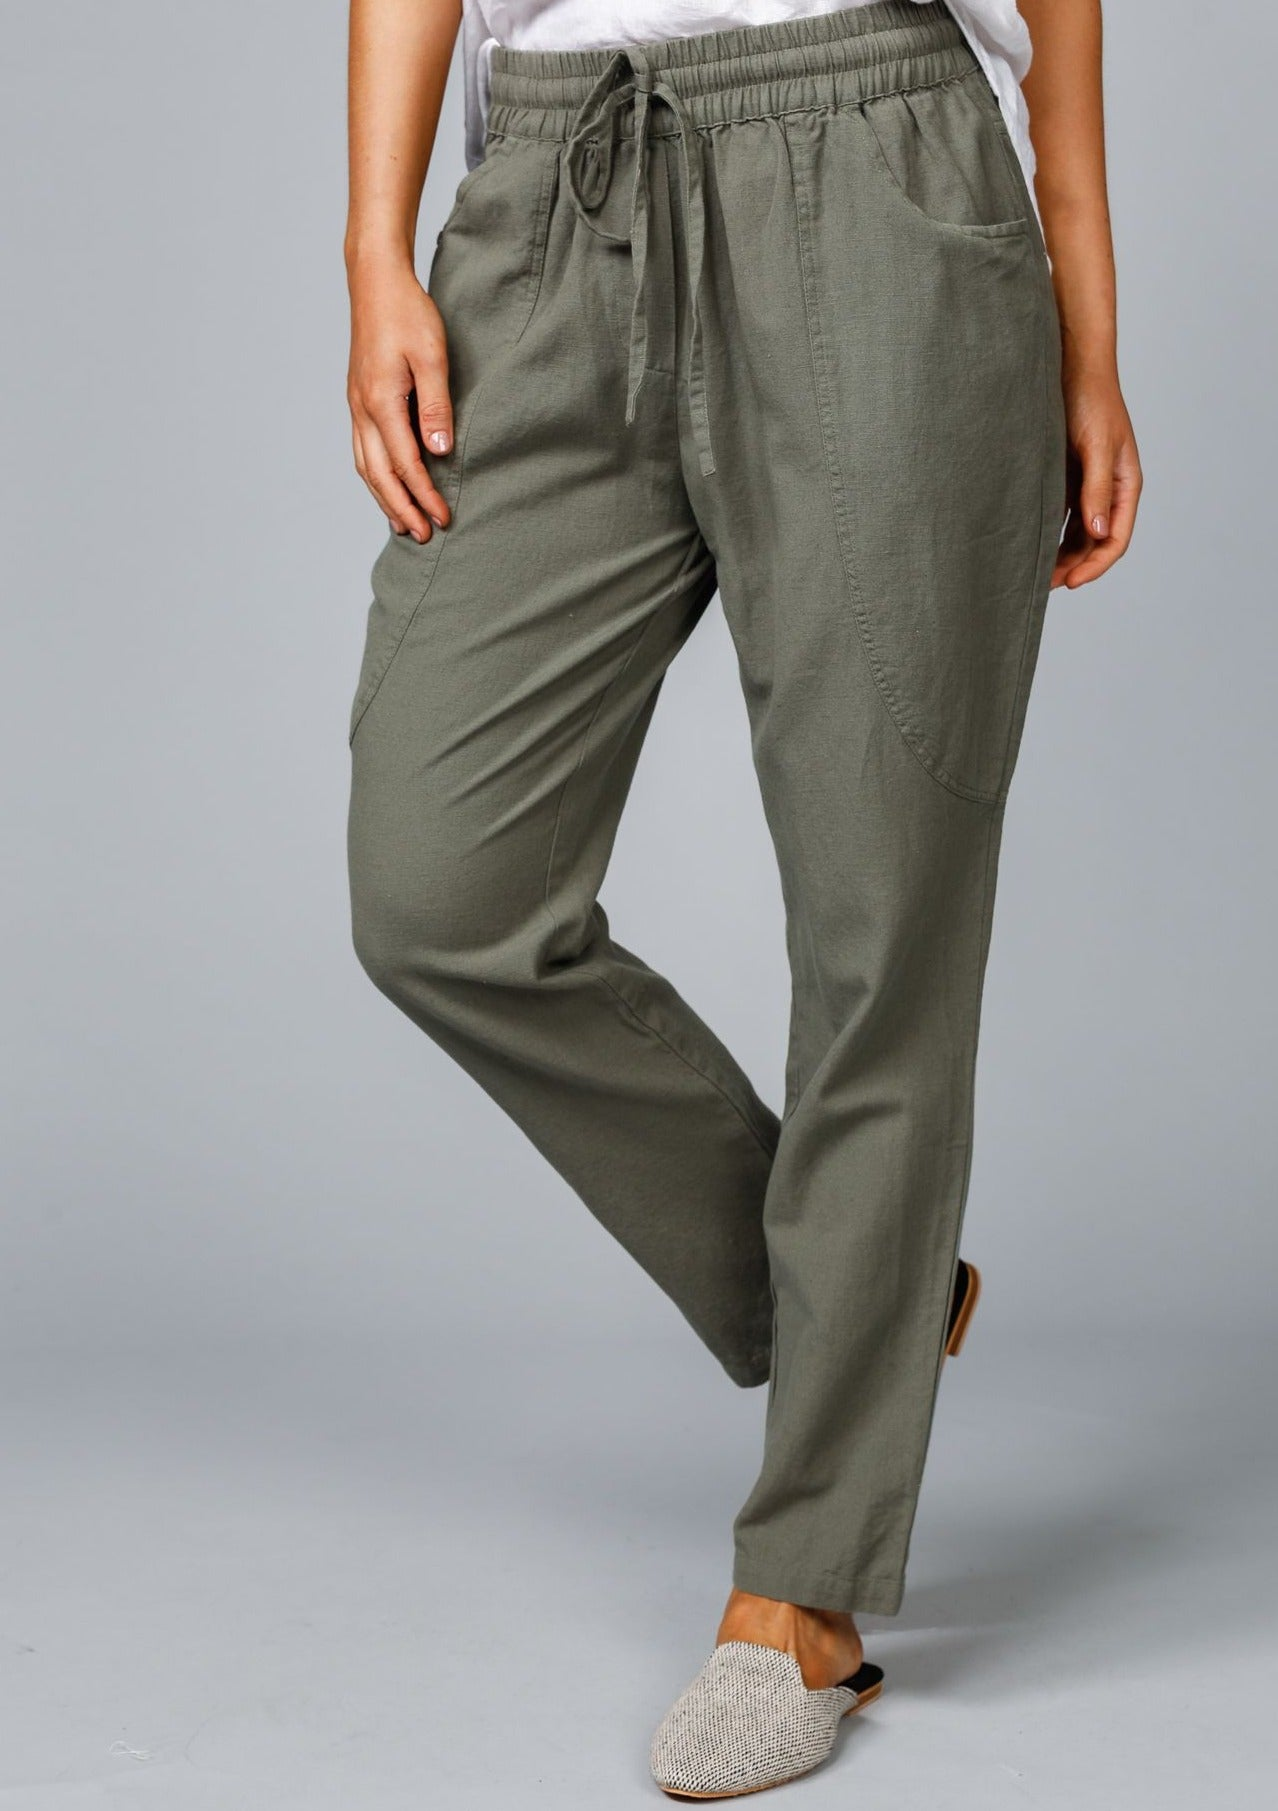 Amalfi Pants - Fern Flex